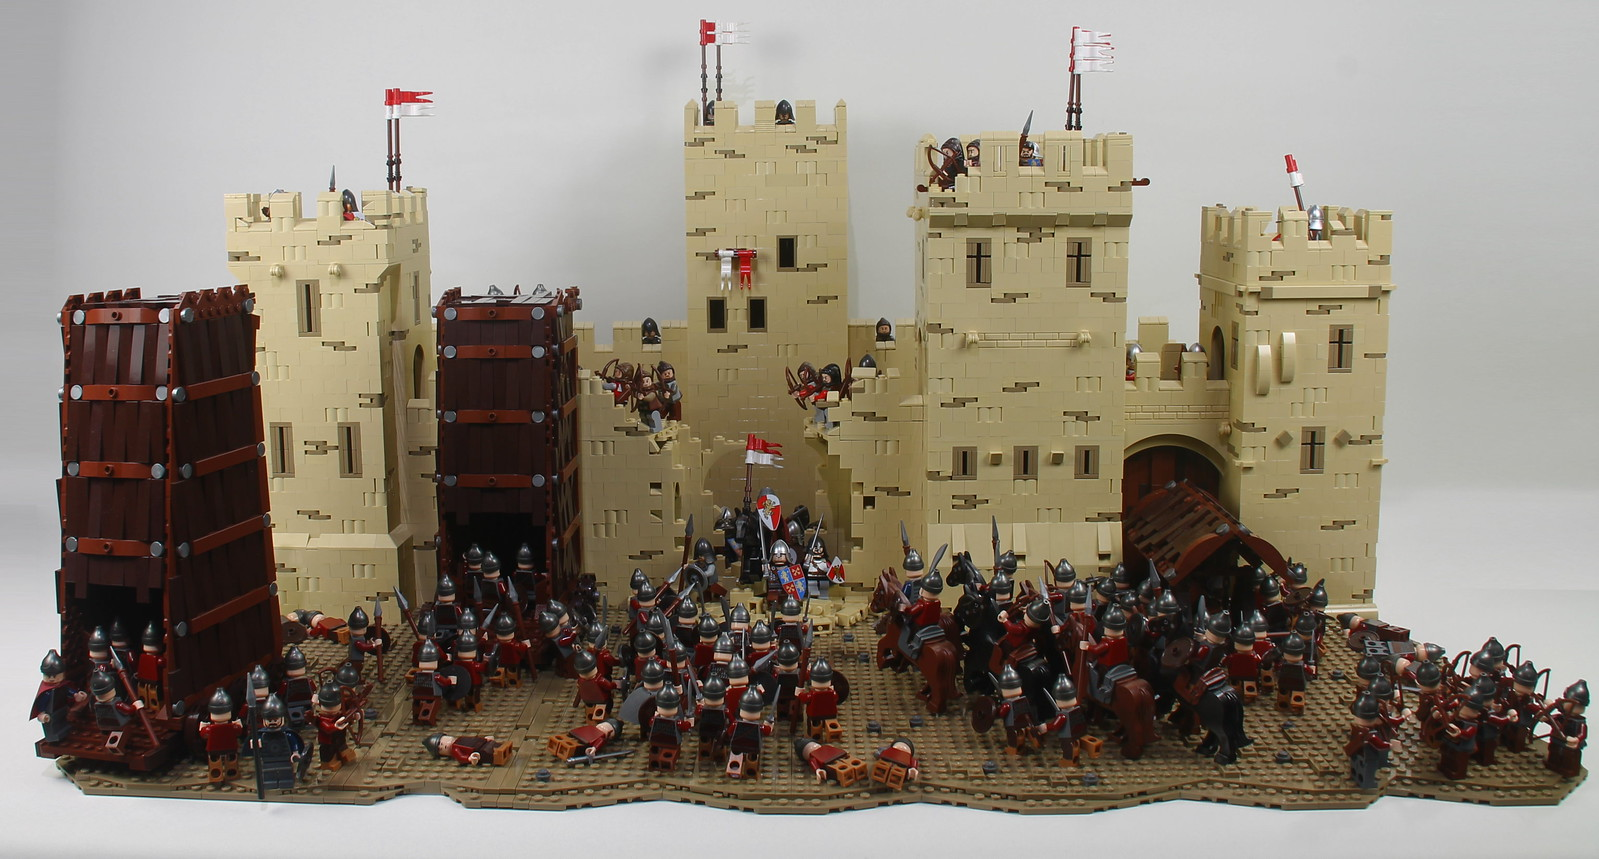 1187, The siege of Jerusalem